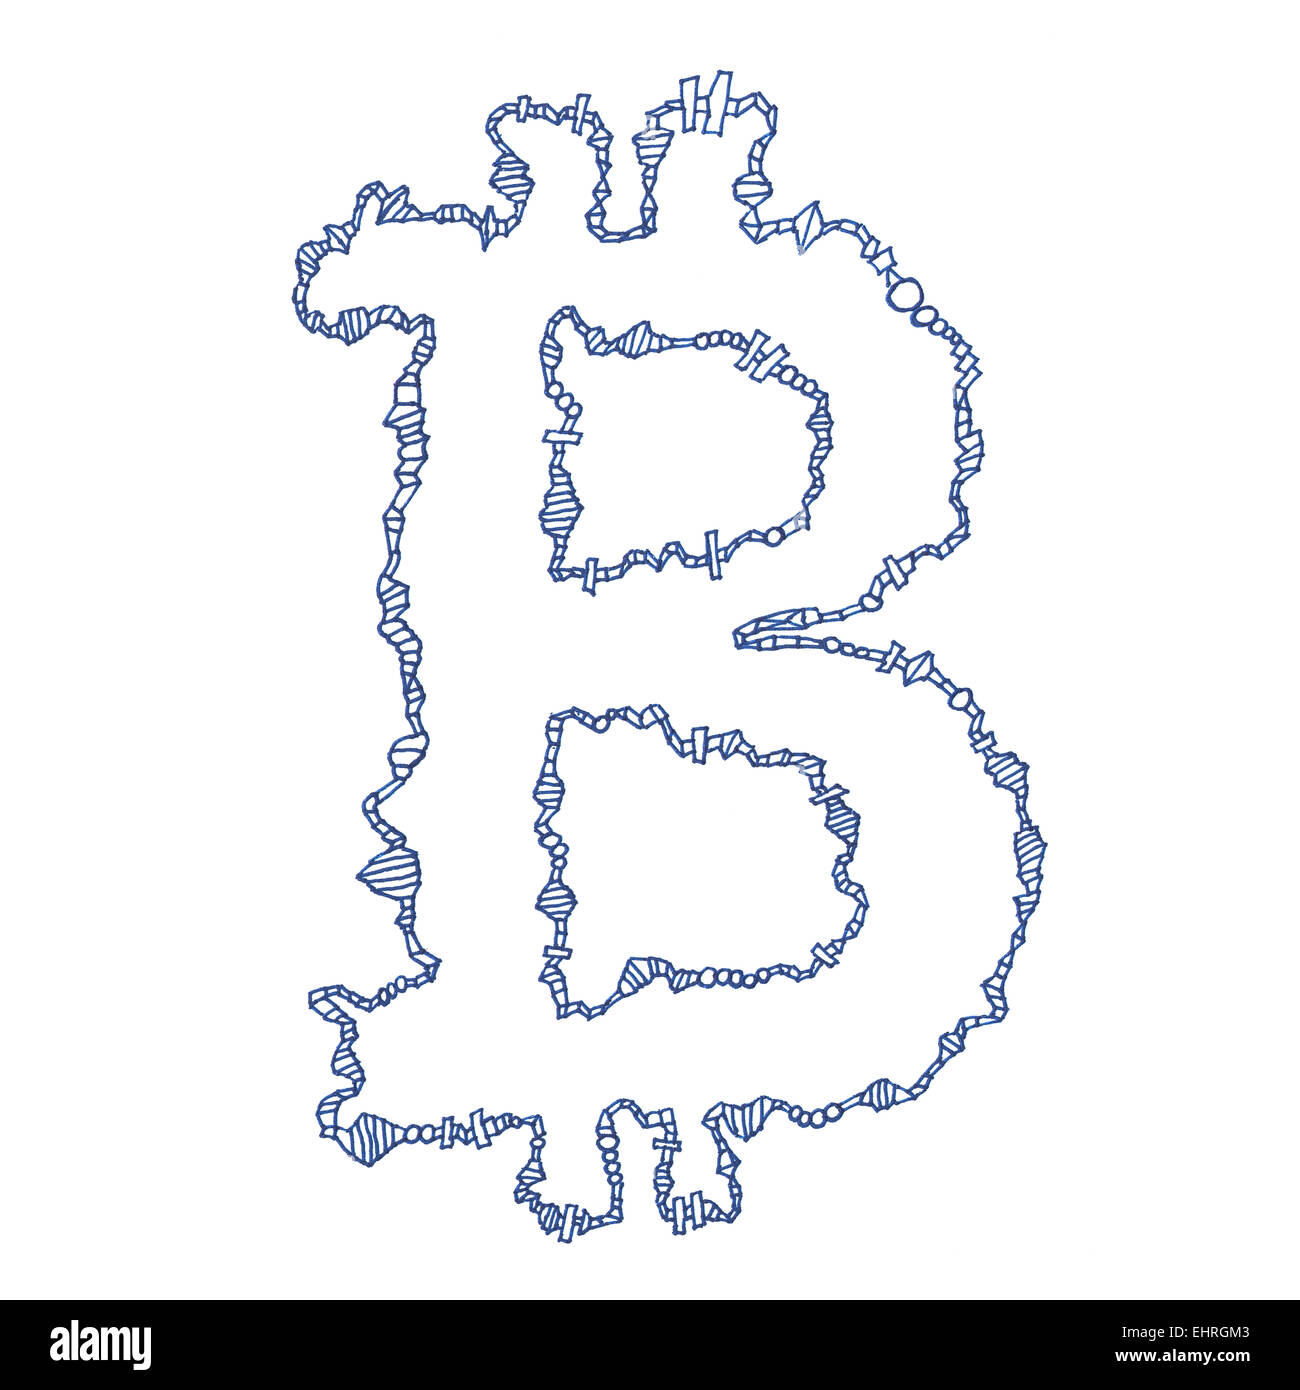 Bitcoin Symbol Handmade Drawing Of A Digital Decentralized Crypto